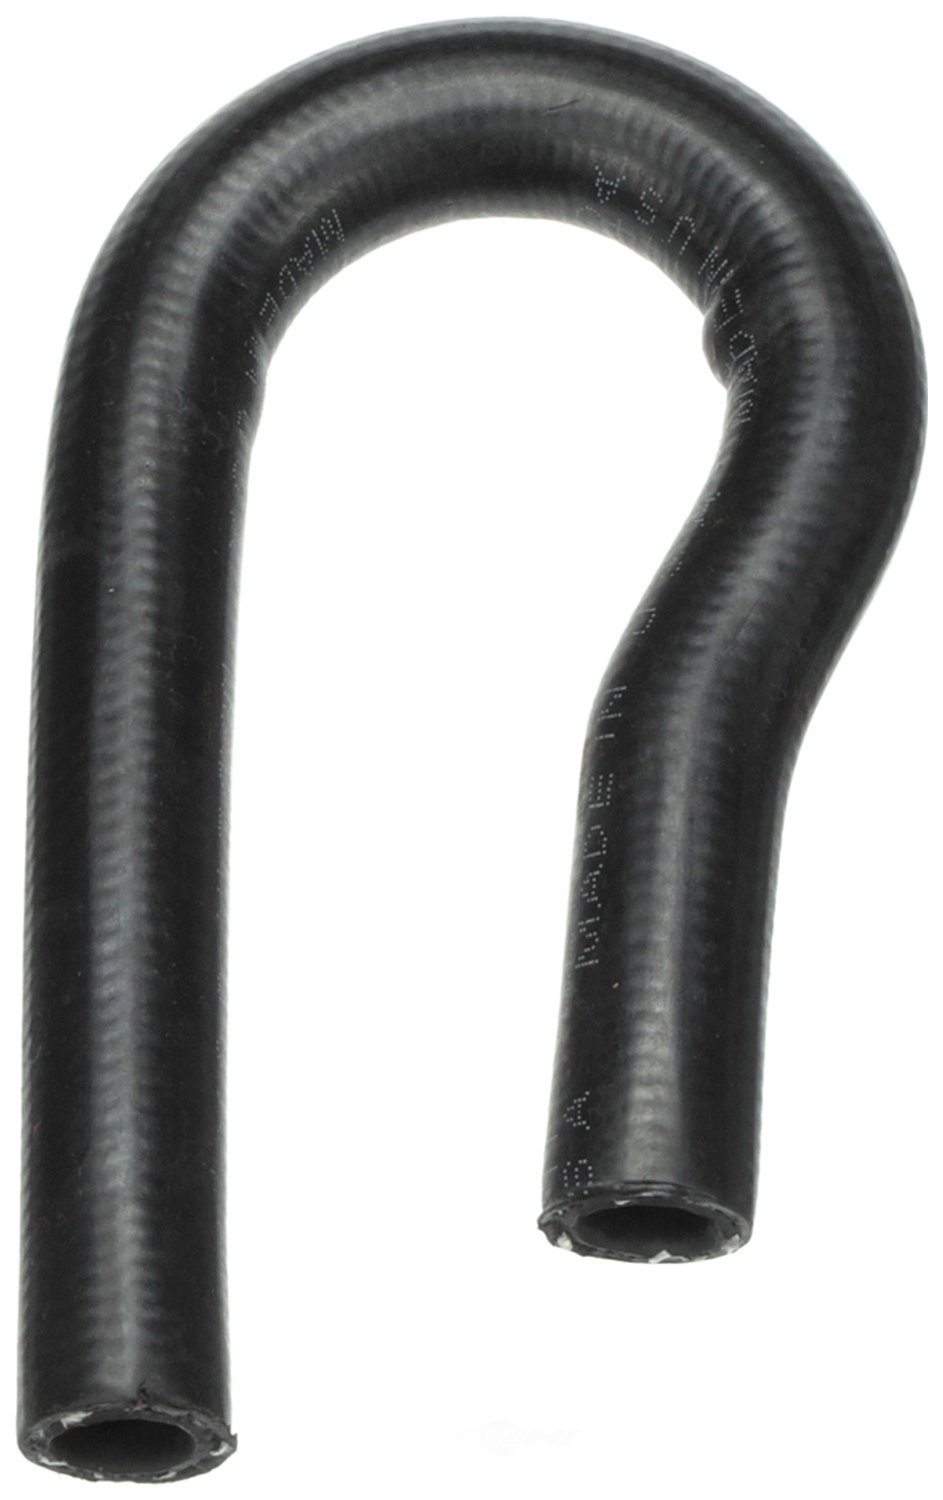 ACDELCO GOLD/PROFESSIONAL - Molded Engine Coolant Bypass Hose - DCC 14076S